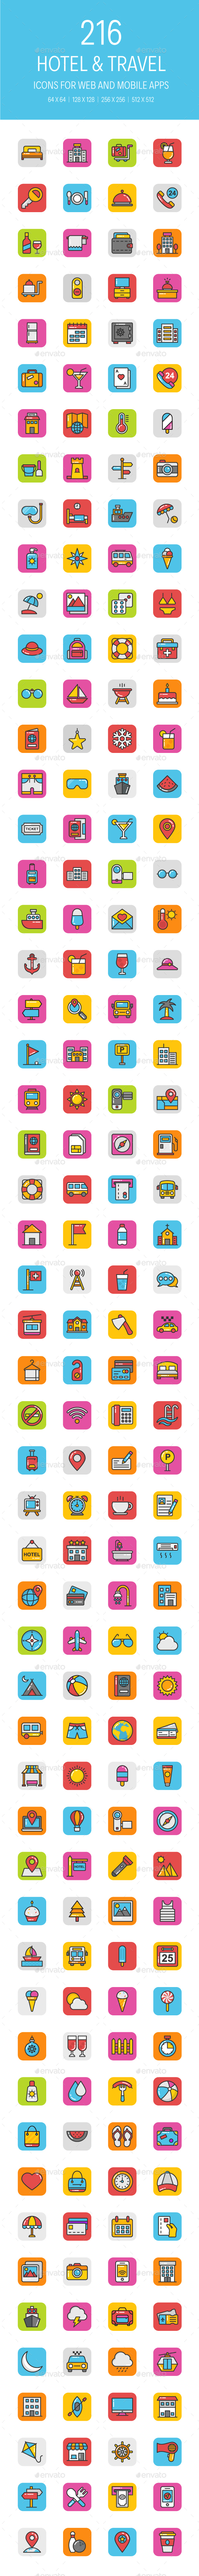 GraphicRiver 216 Hotel and Travel Icons 21179698